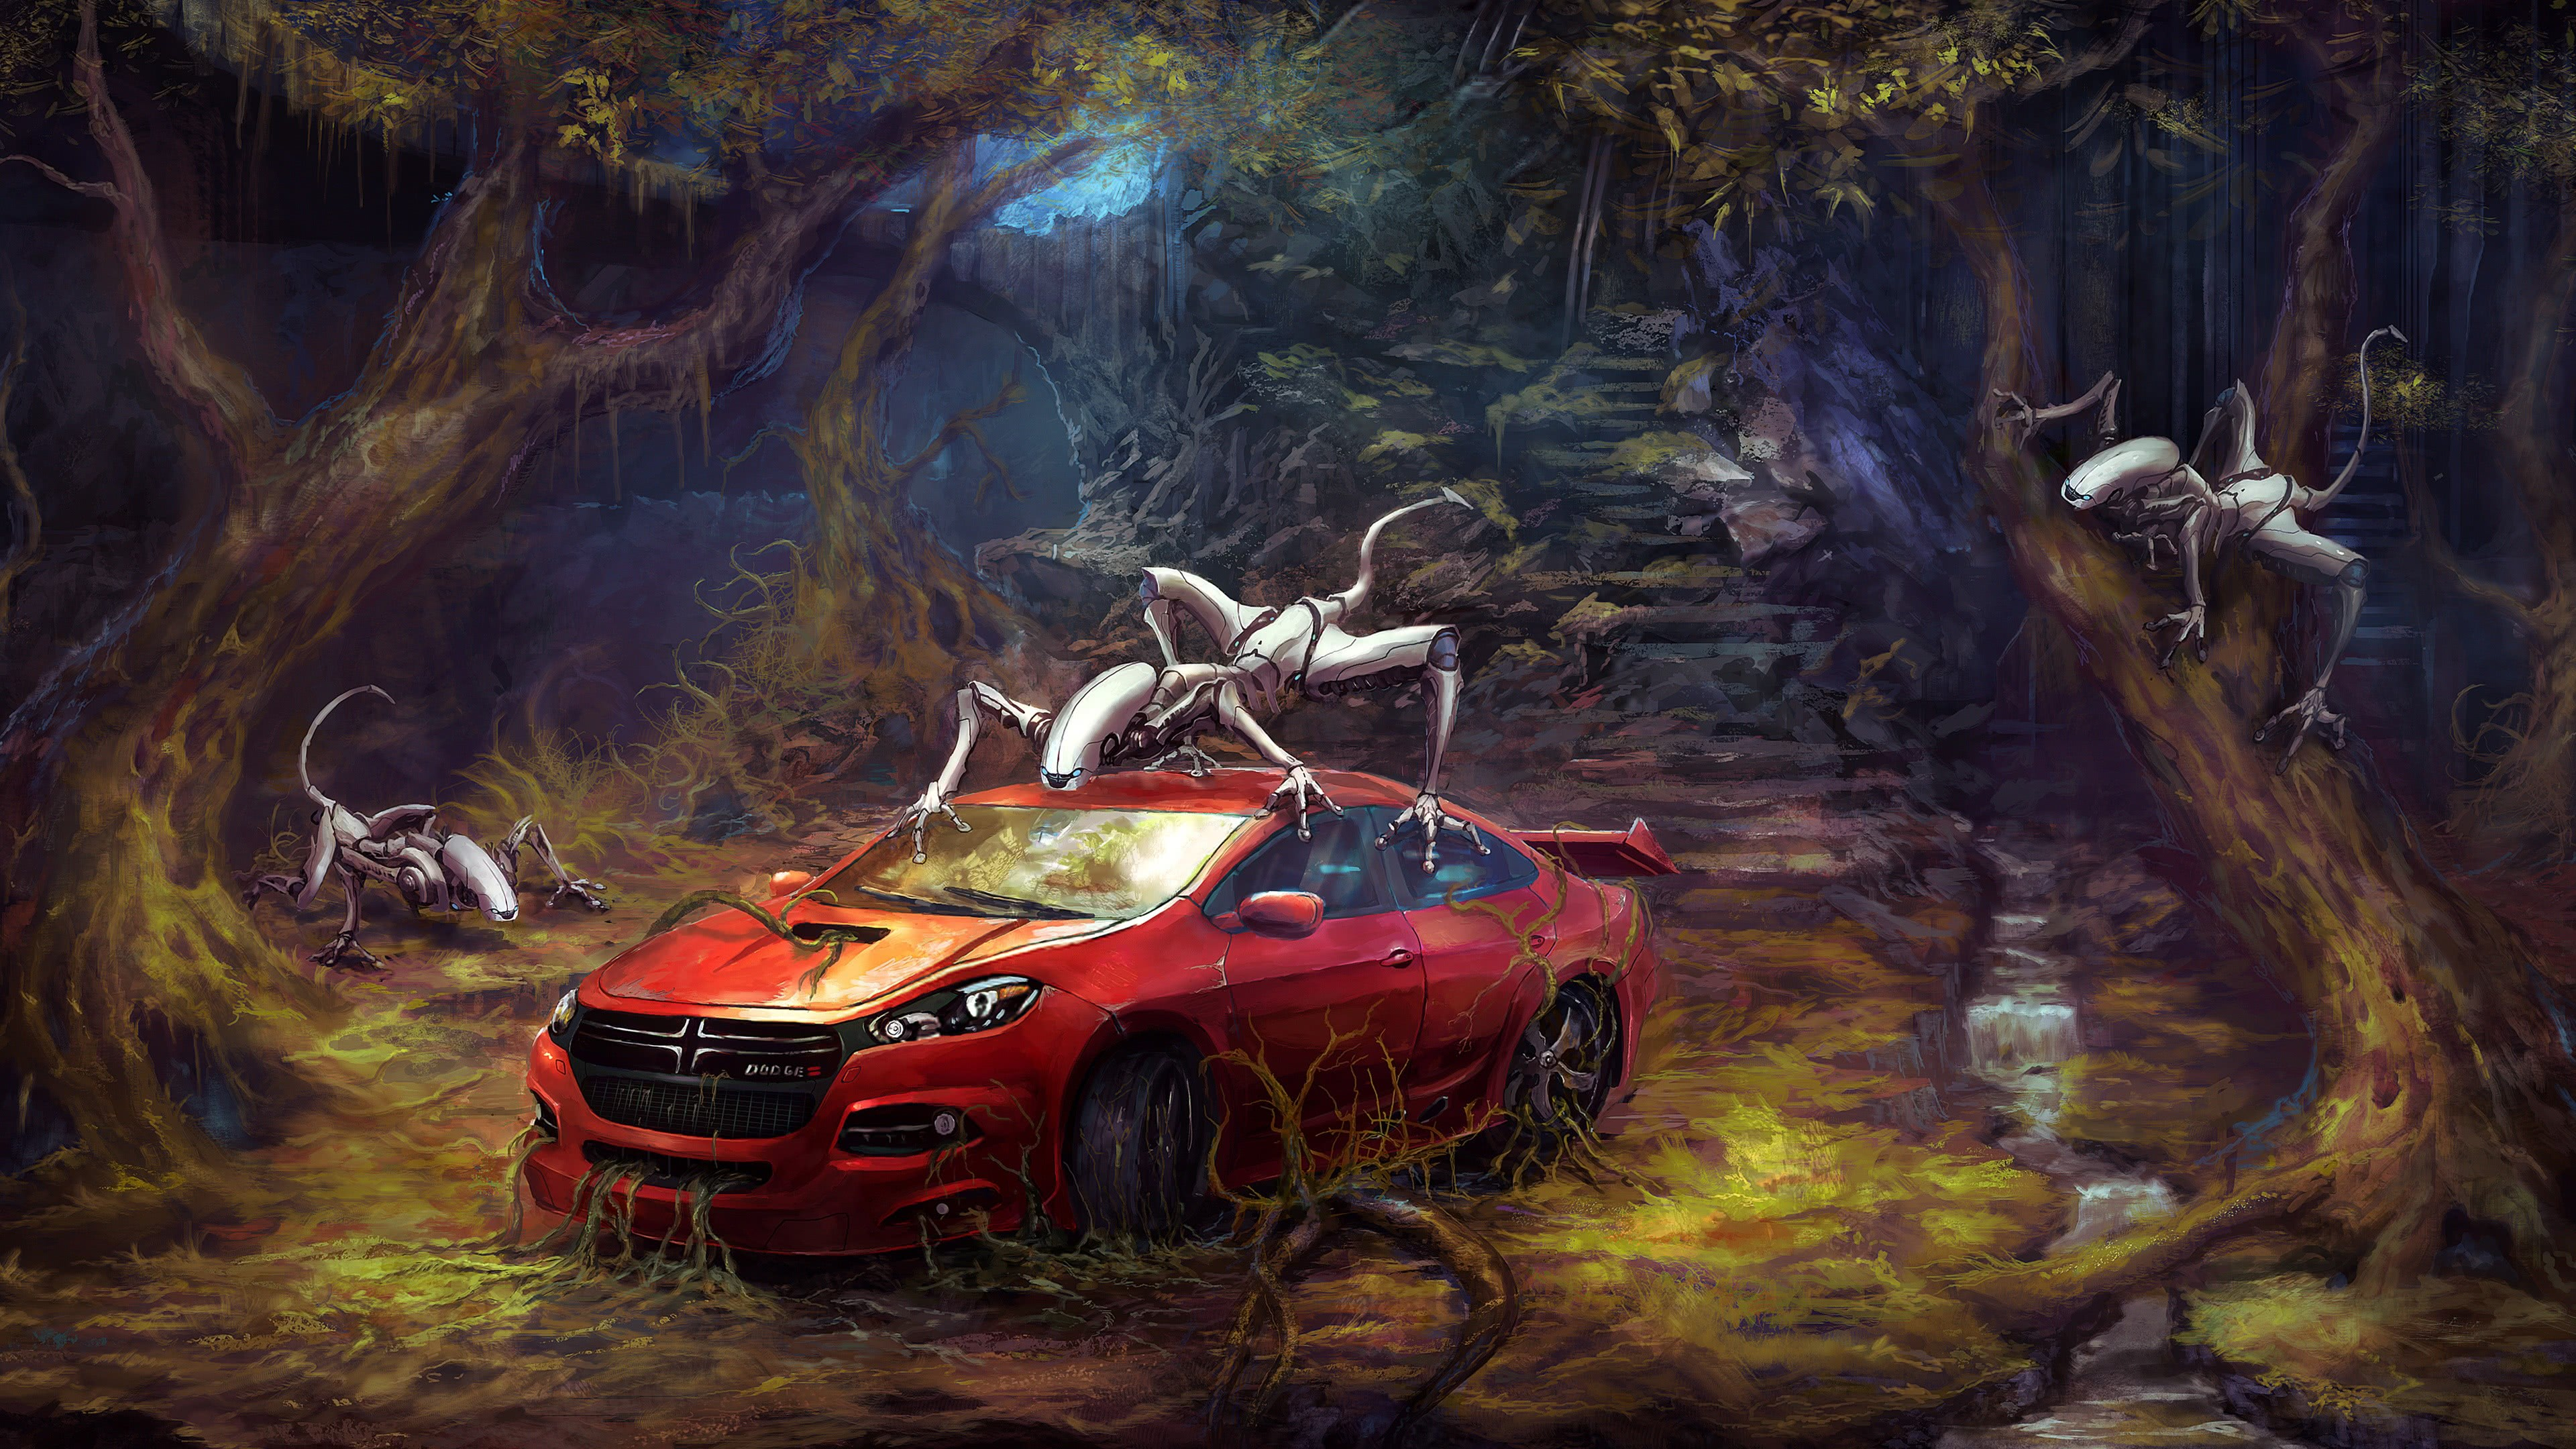 2018 Toyota Ft1 >> Toyota FT1 In Forest With Robots UHD 4K Wallpaper | Pixelz